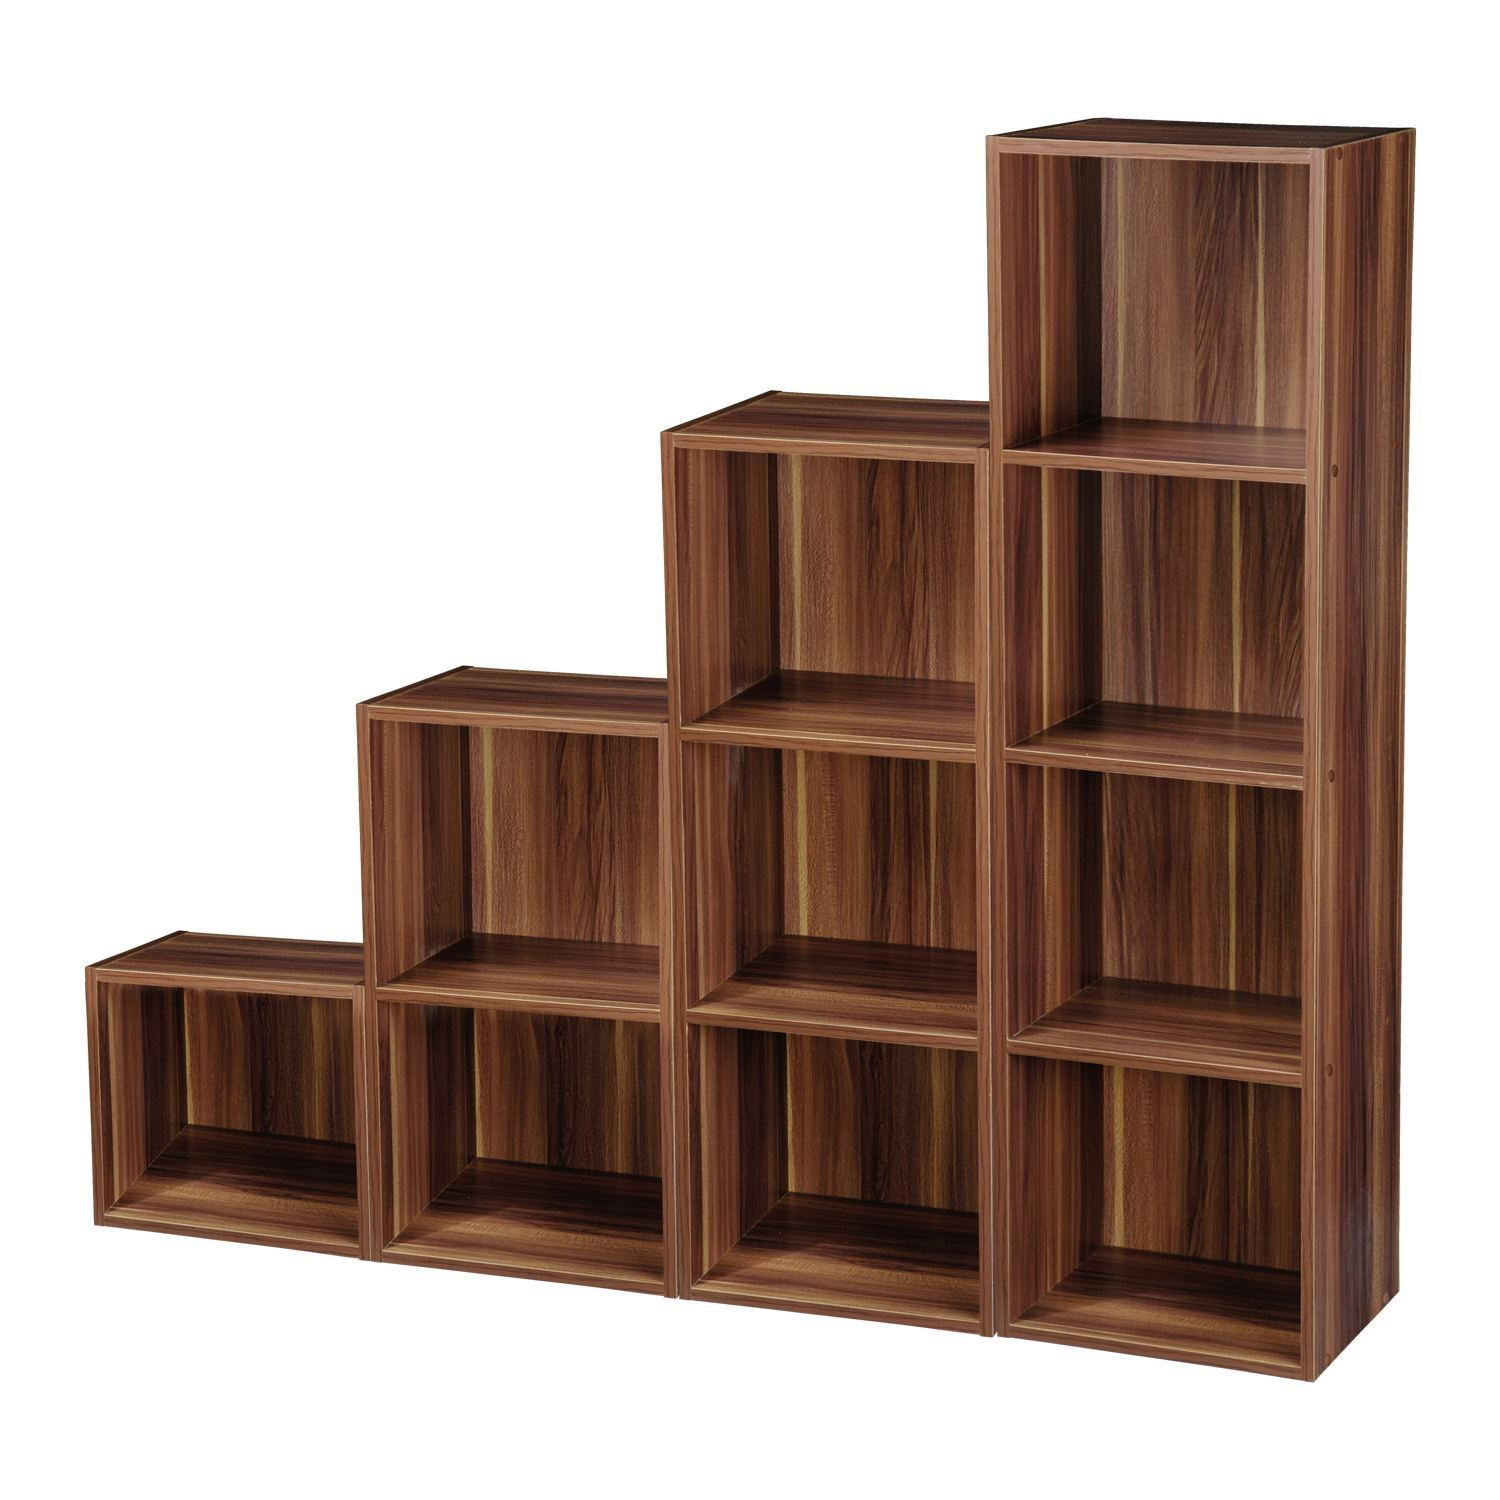 Cube Storage Shelves 2 4 Tier Wooden Bookcase Shelving Bookshelf Storage